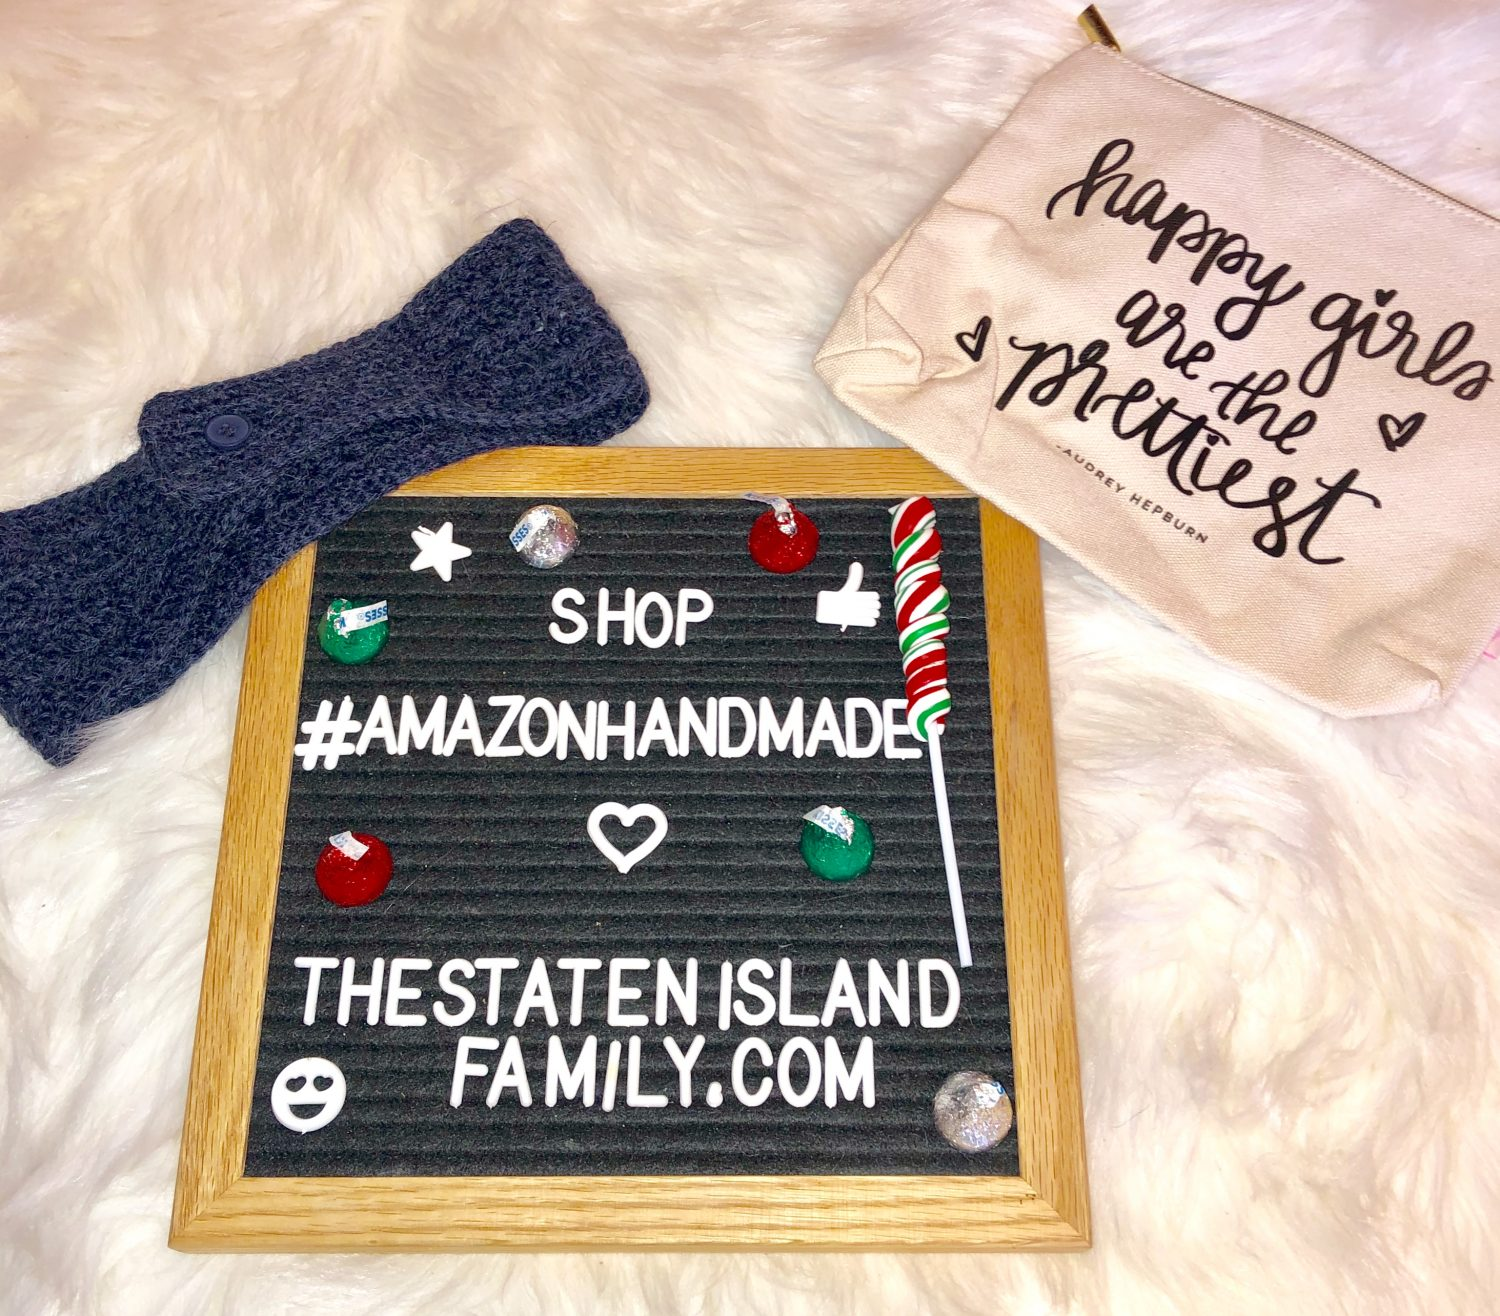 Stress free holiday tips and gifts from Amazon Handmade